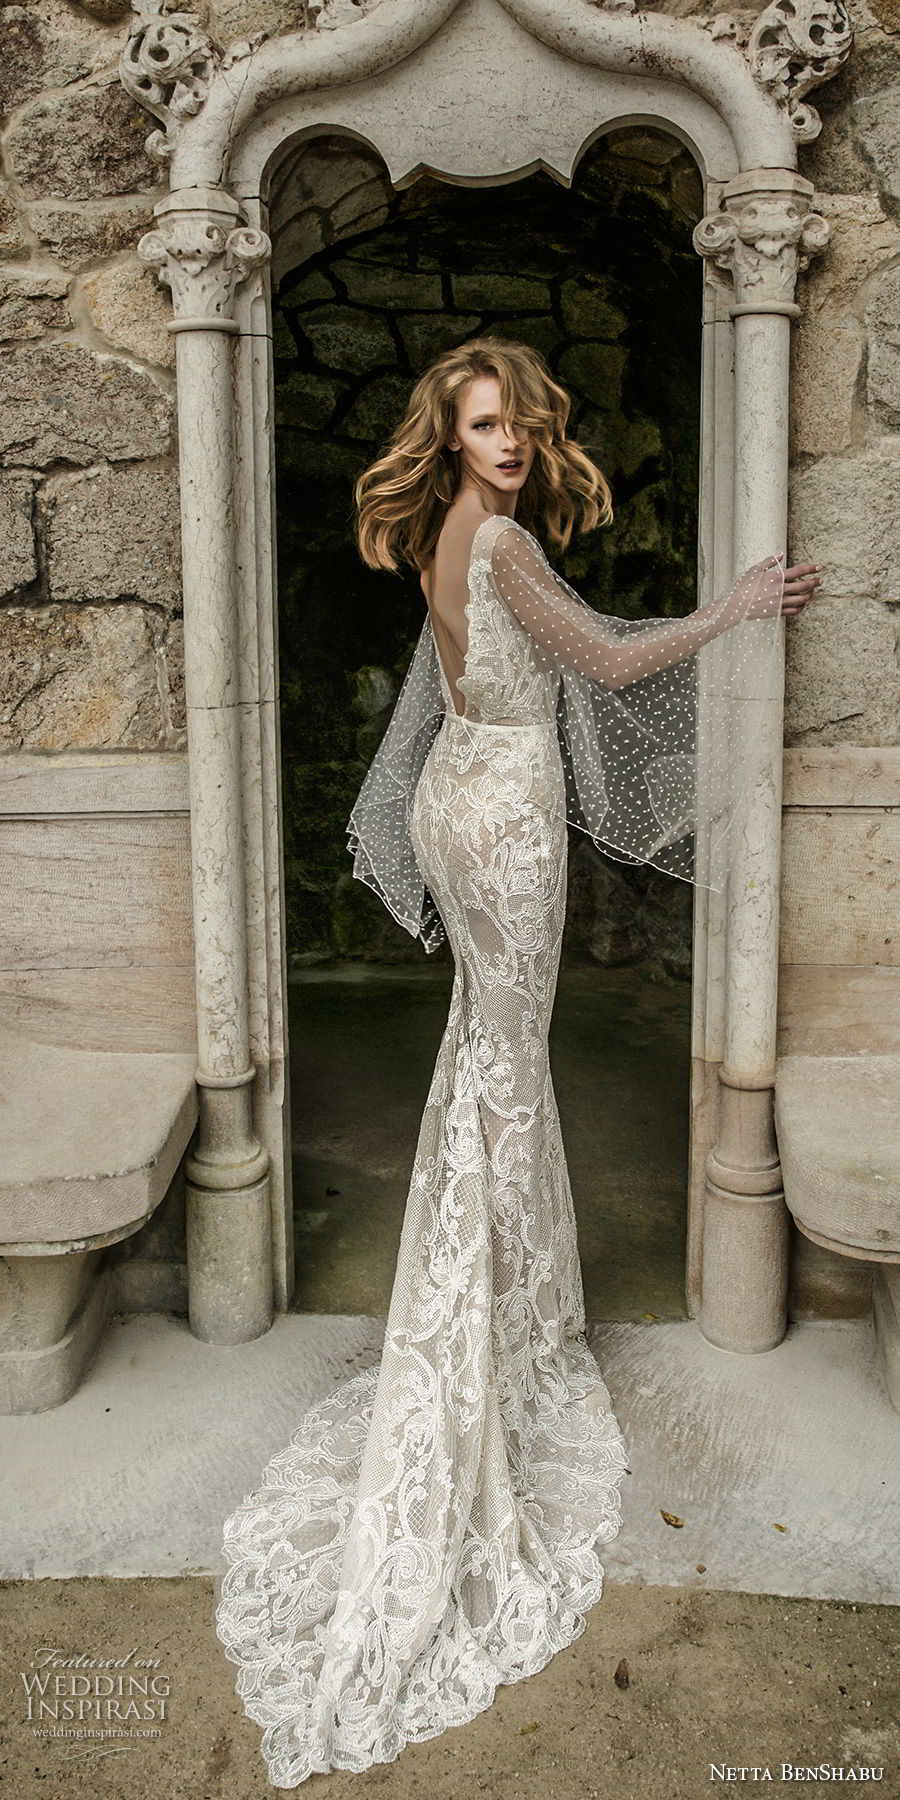 netta benshabu 2017 bridal long angle sleeves neck full embellishment elegant sheath wedding dress open v back sweep train (10) bv